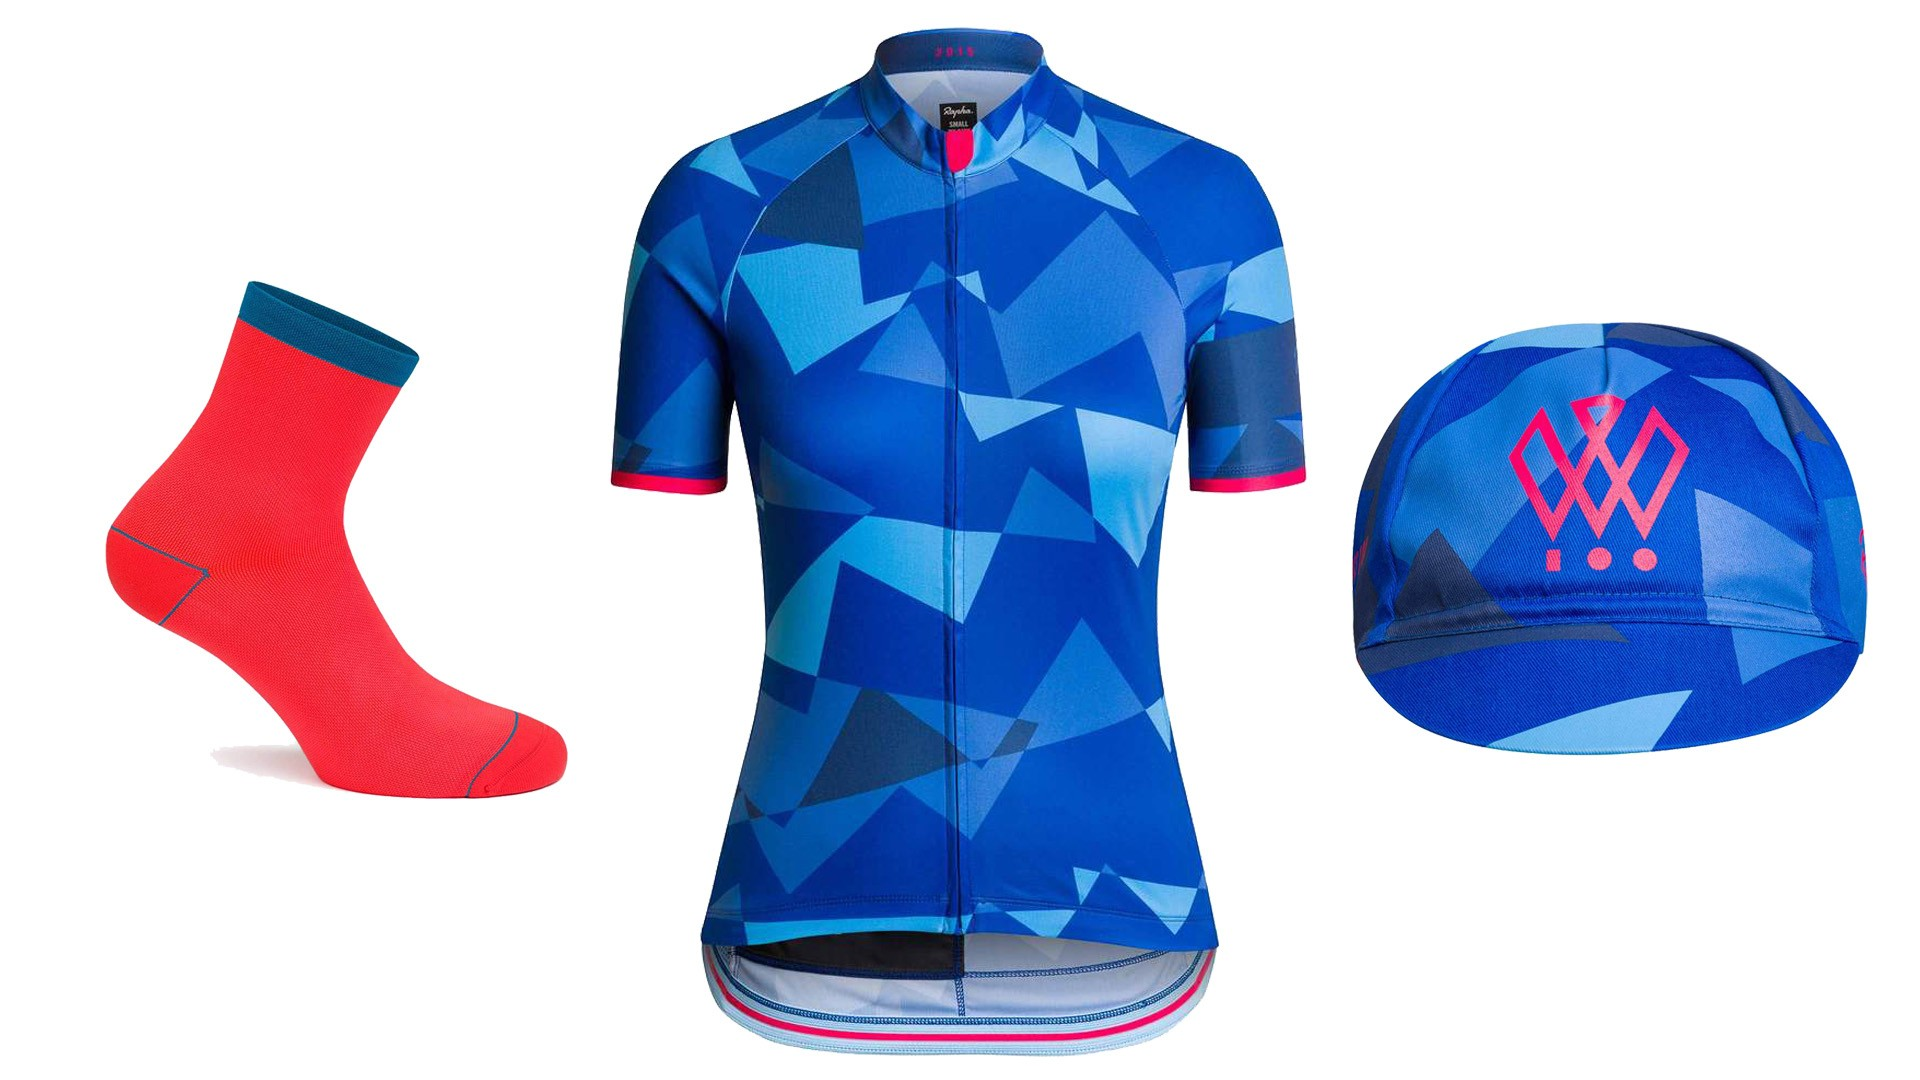 The Rapha Women's 100 capsule collection consists of socks, cap and jersey